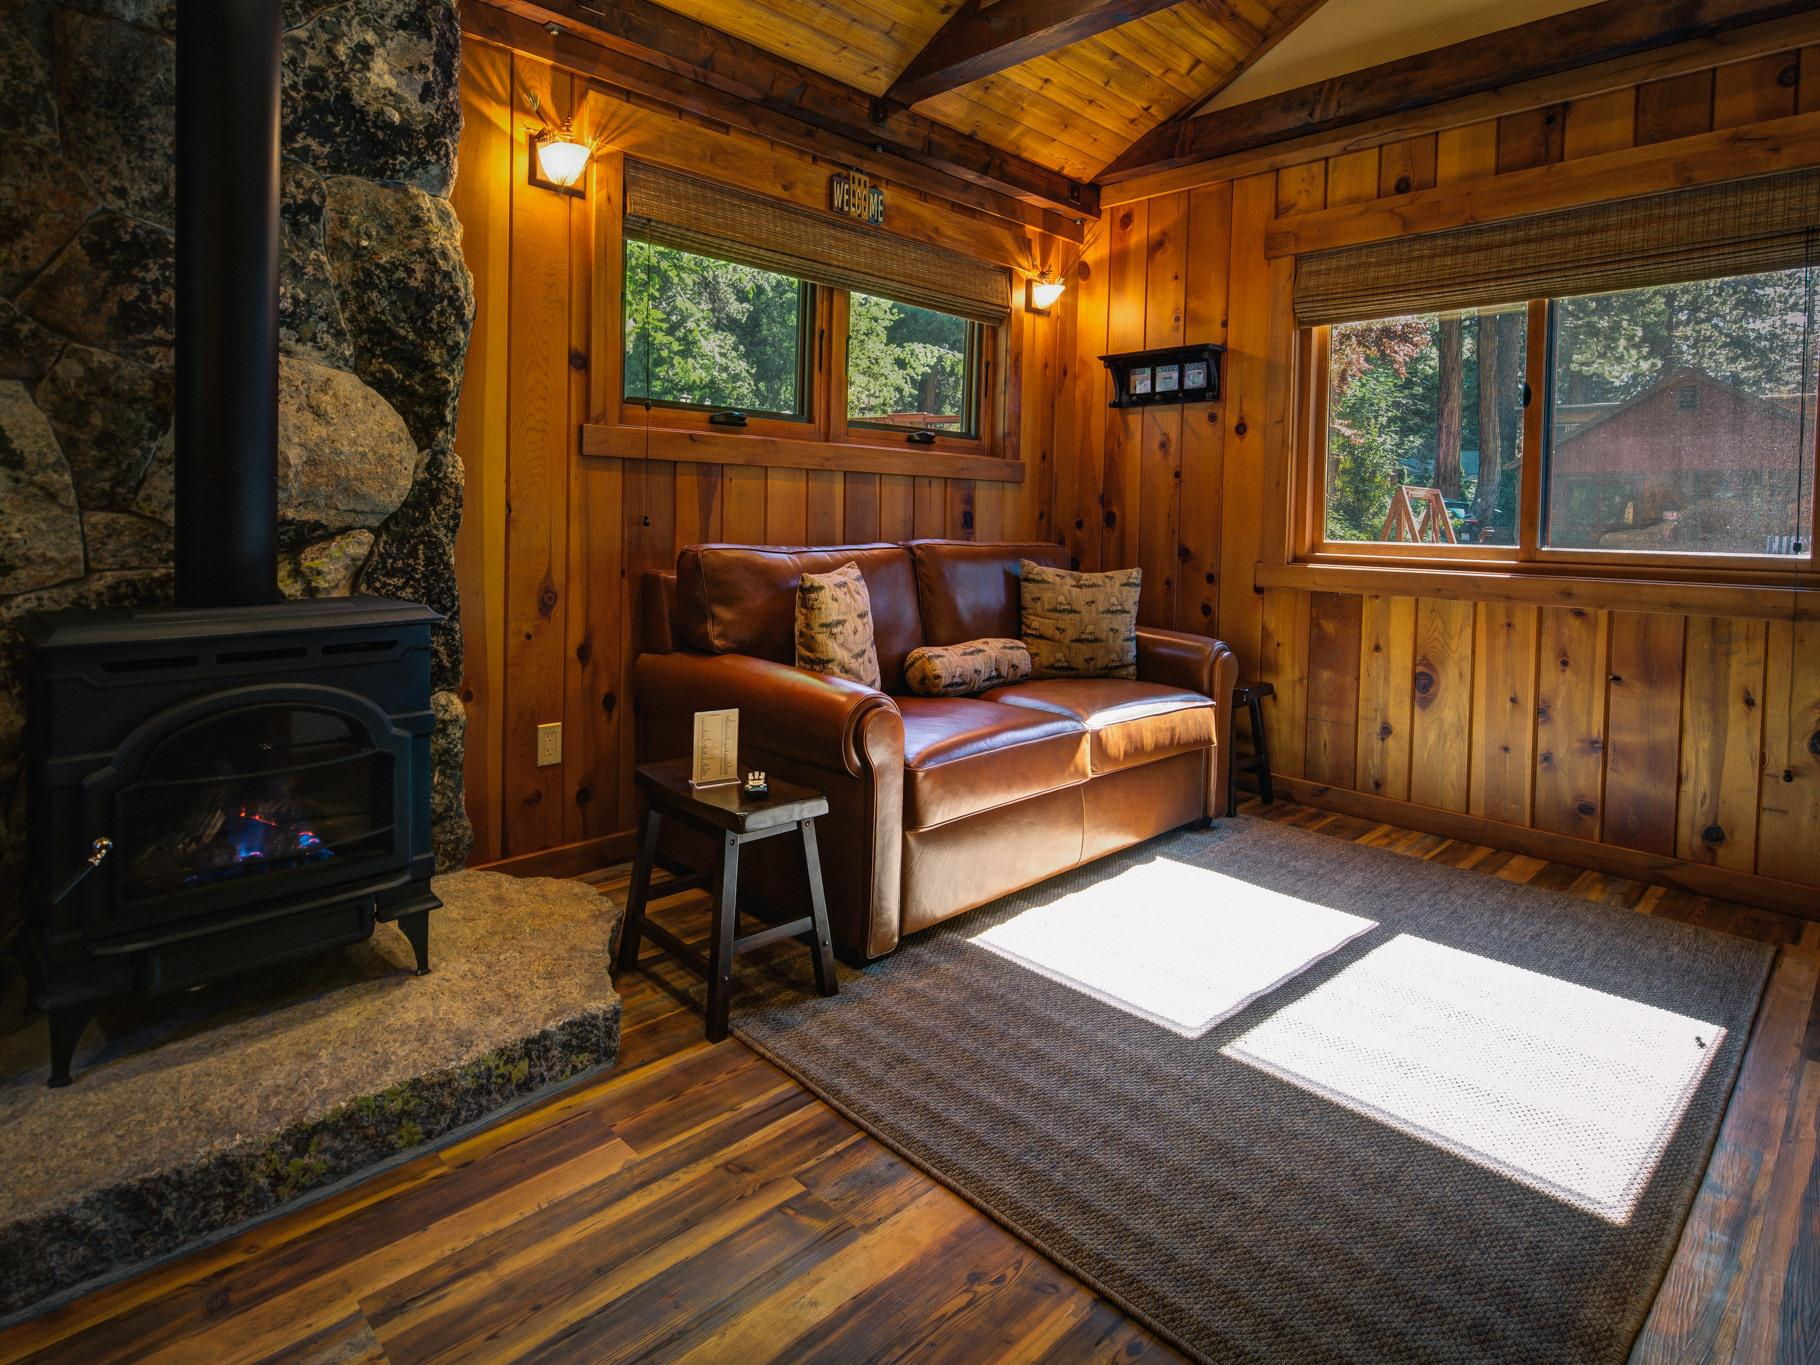 Anniversary Suite #15-Cabin-Ensuite with Jet bath-Luxury-Garden View - Base Rate